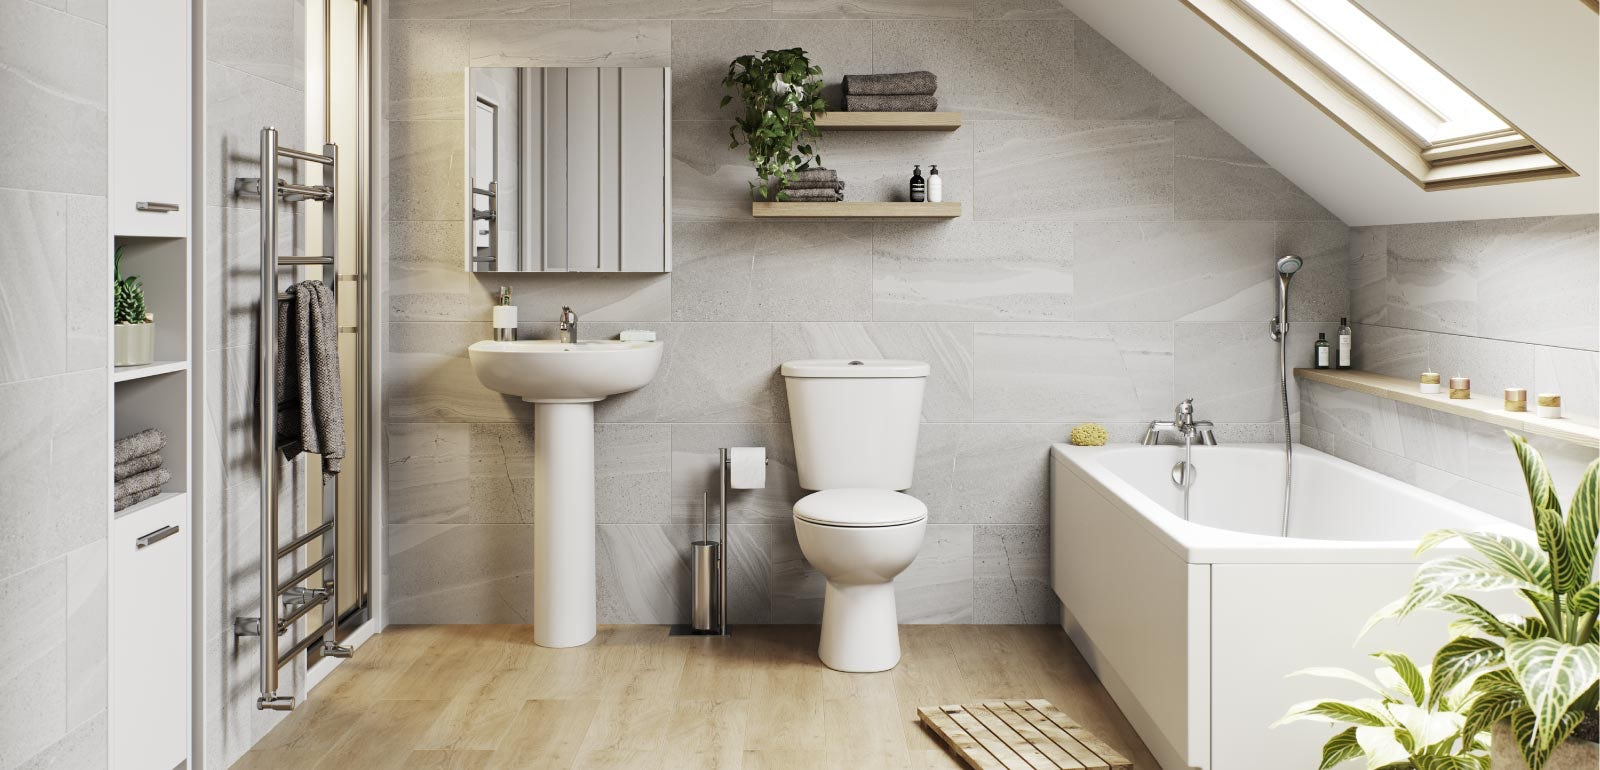 Under £700: A budget bathroom that's big on style